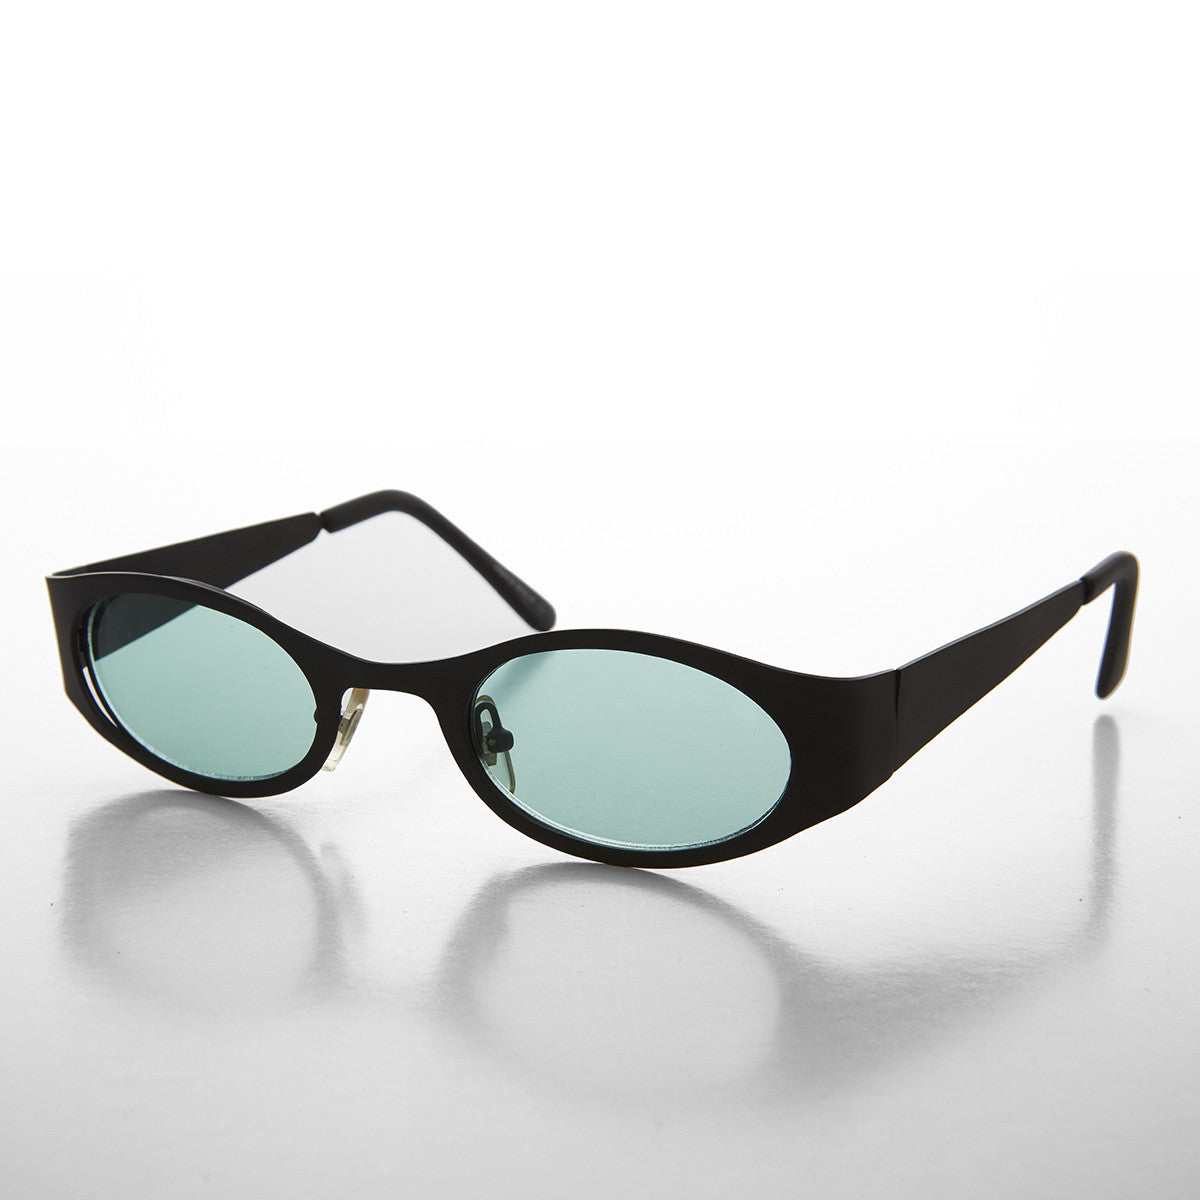 green color lens sunglass